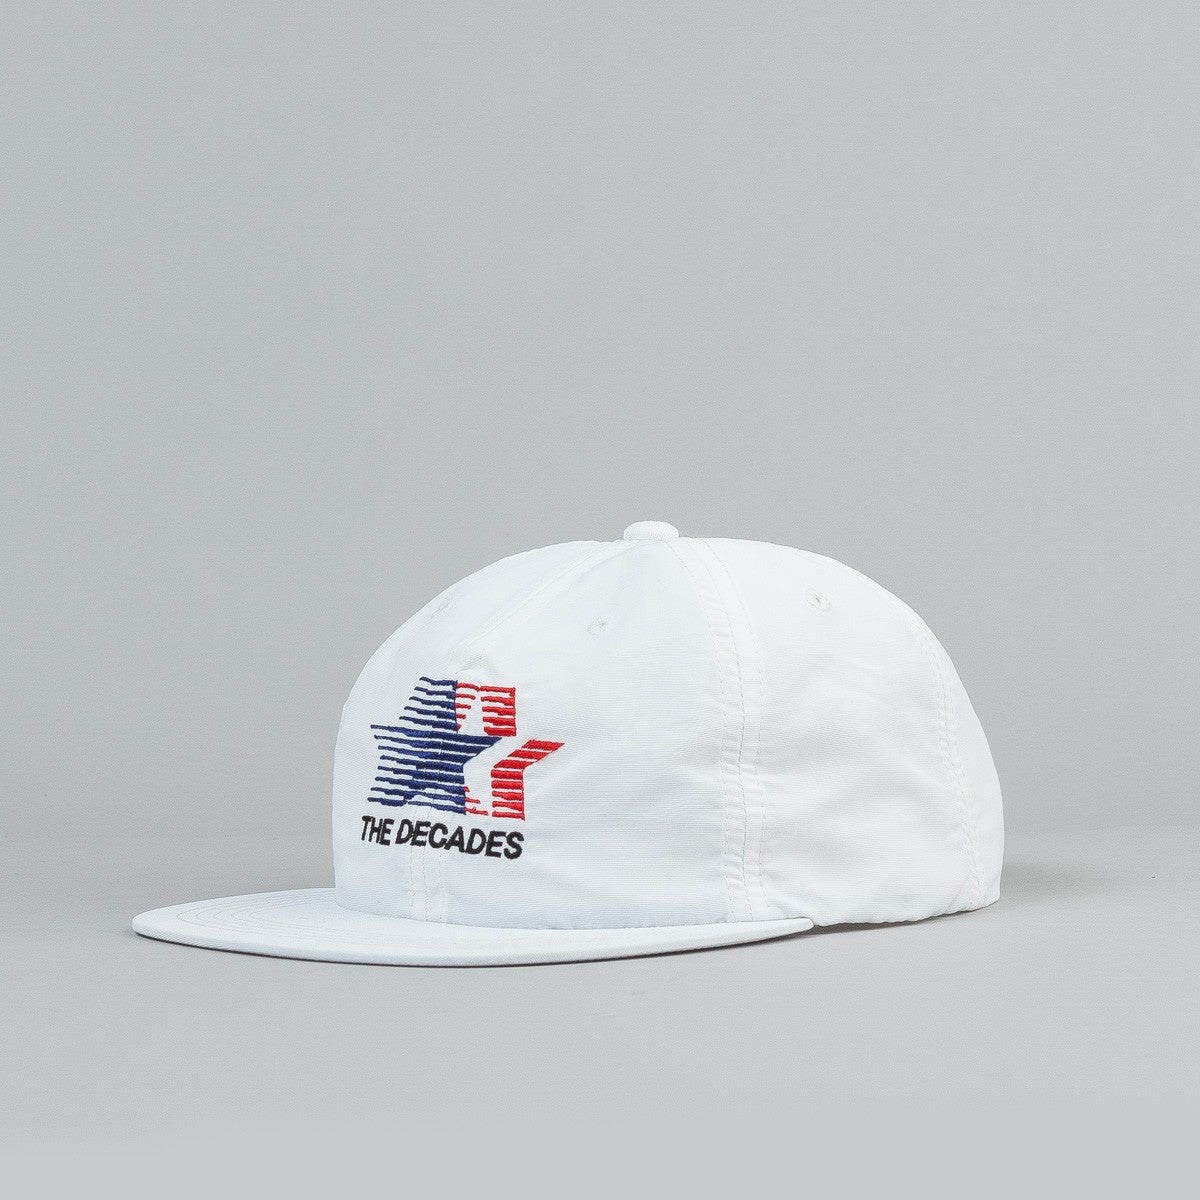 The Decades Contender Snapback Cap